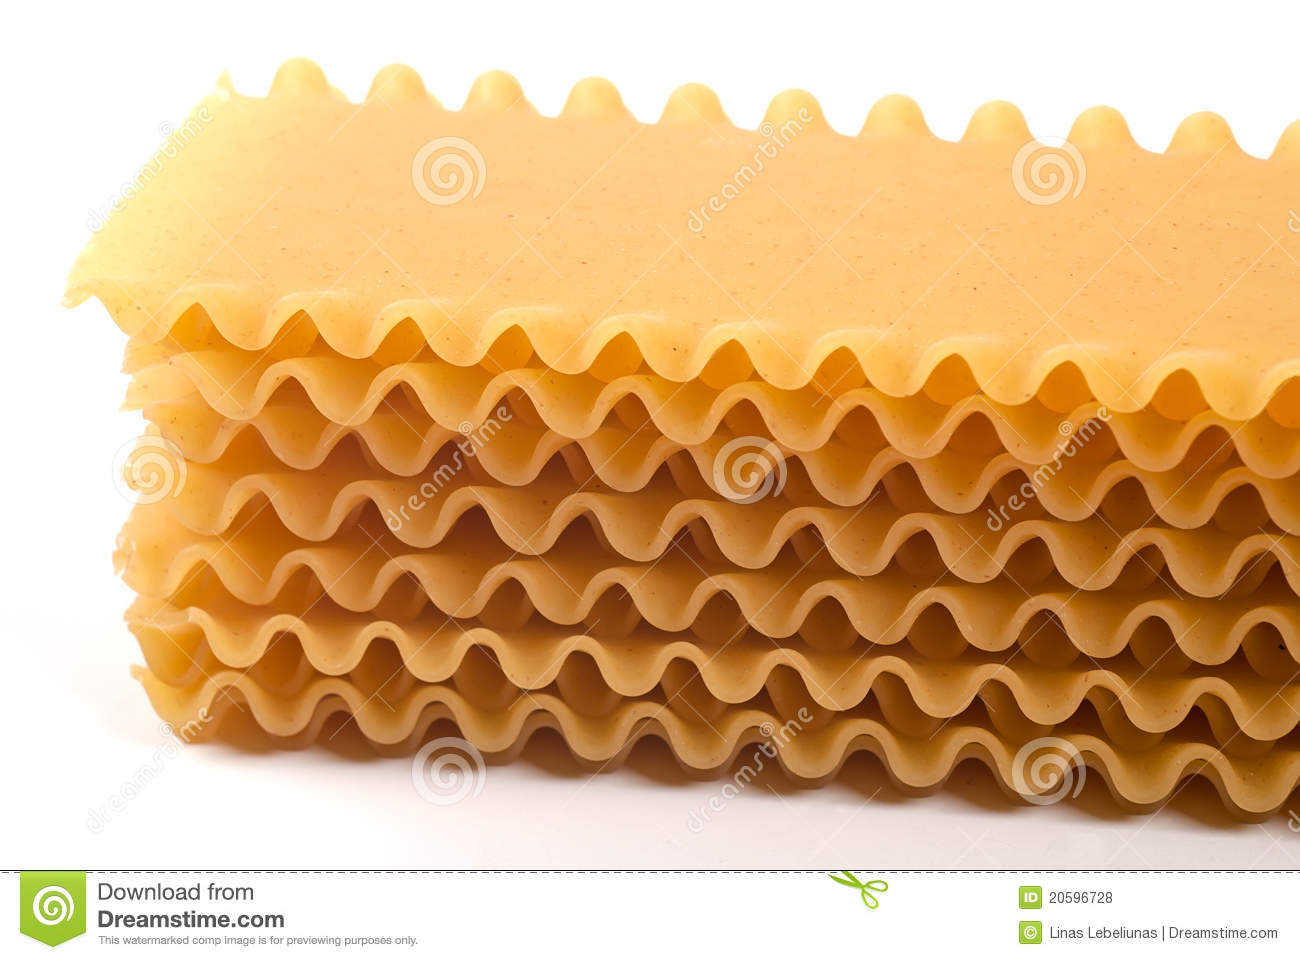 Lasagna Pasta Royalty Free Stock Photos - Image: 20596728